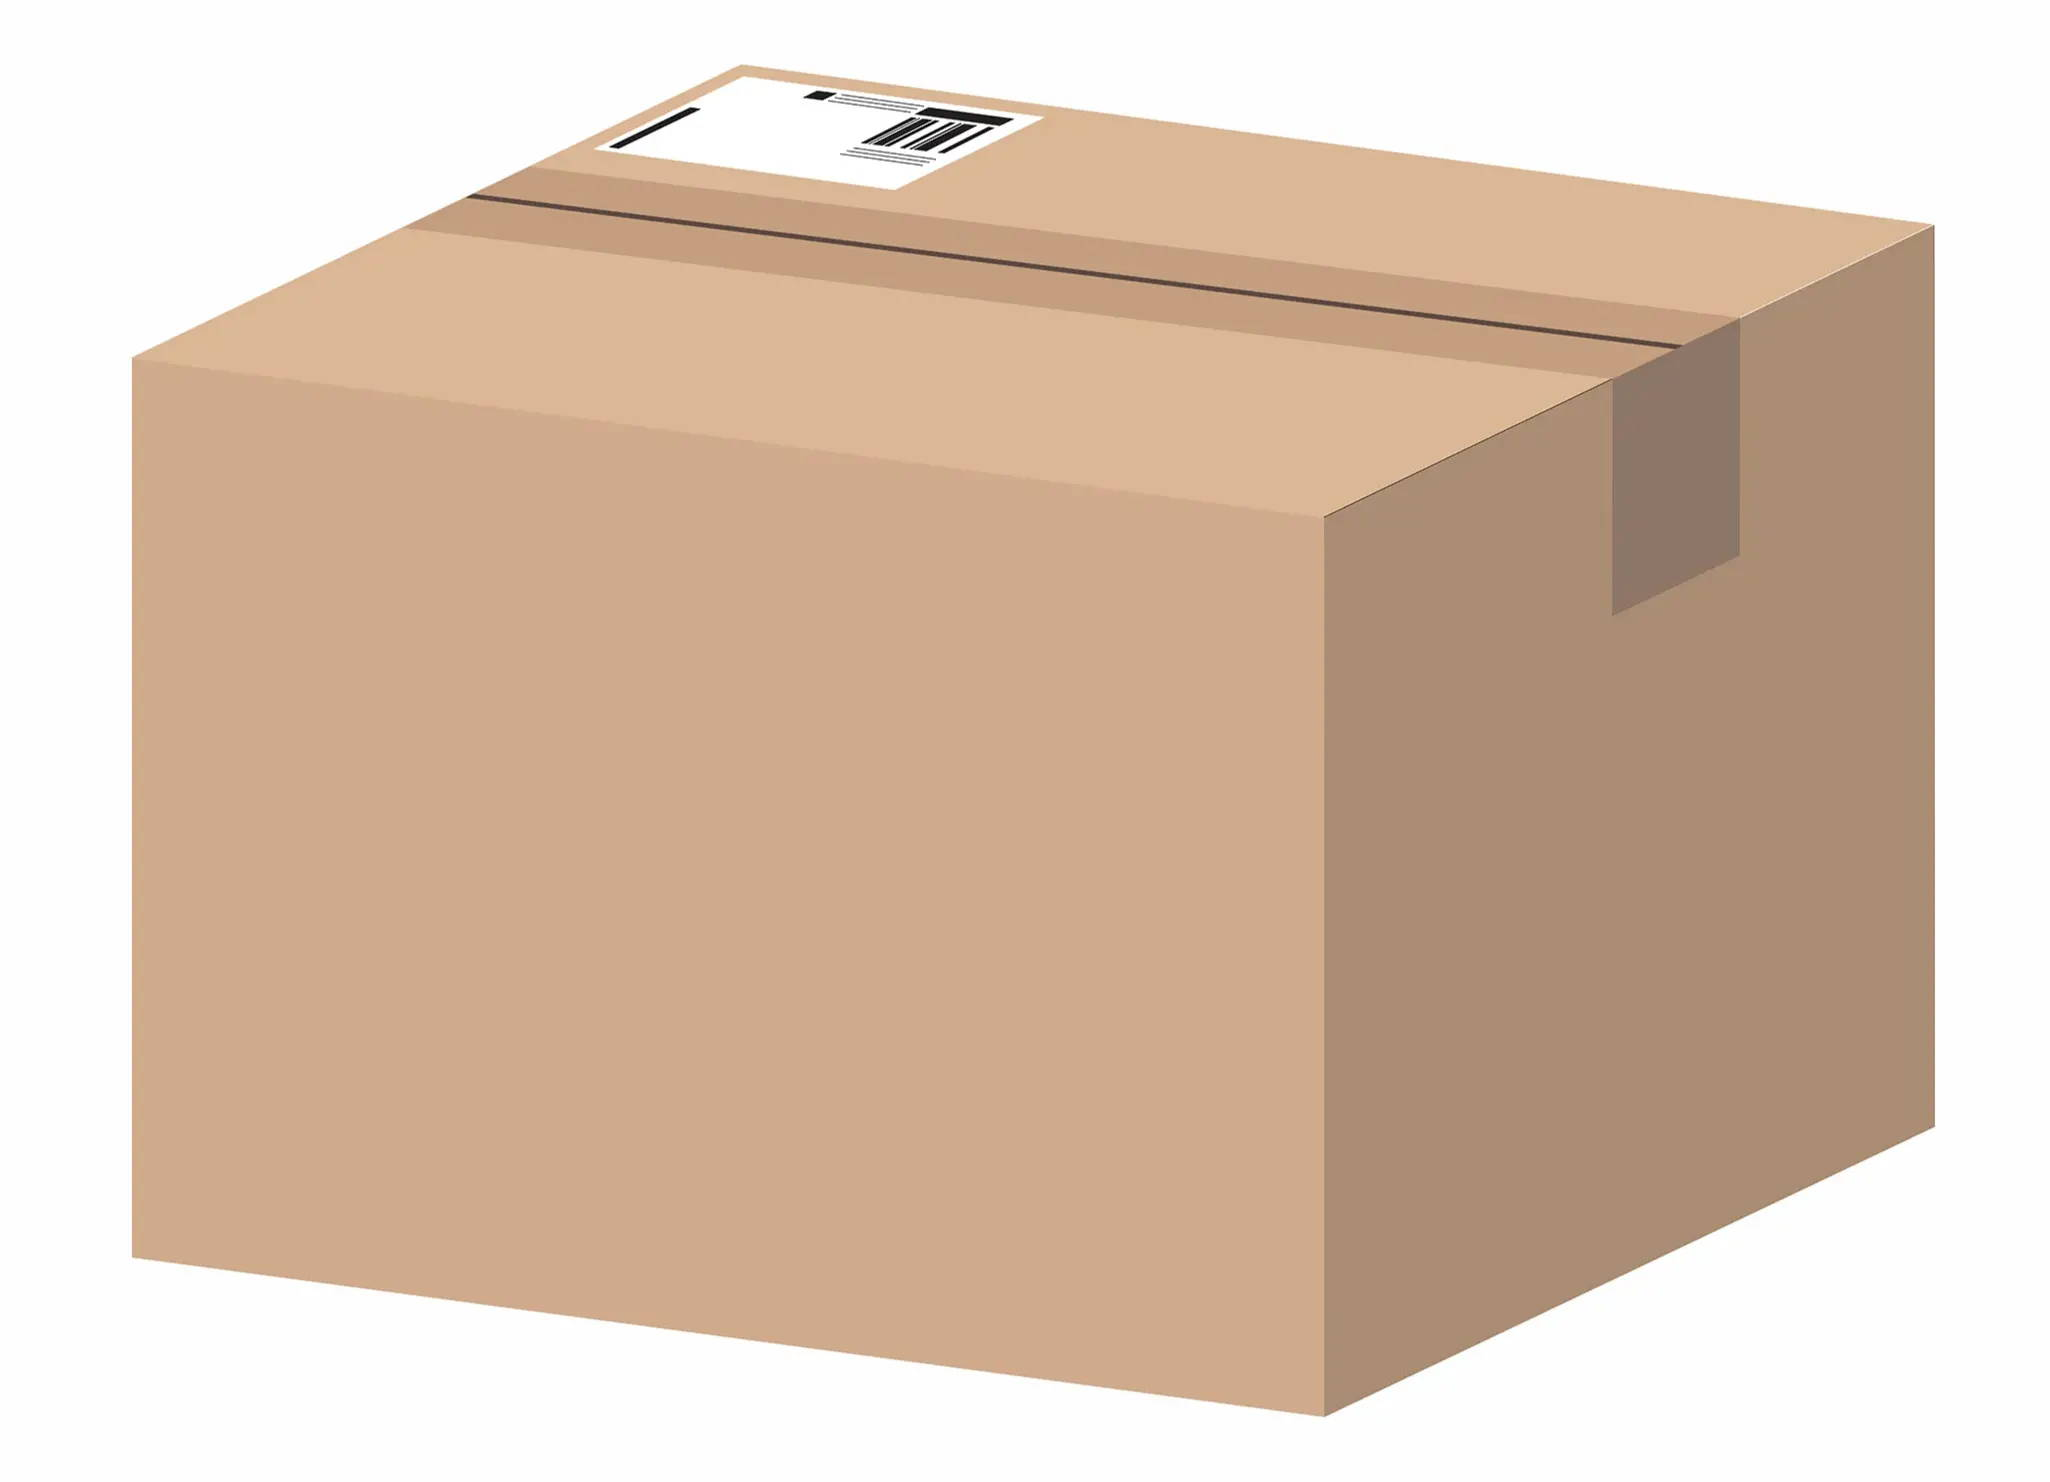 All purchases are sent in a discreet brown box with discreet shipping labelling